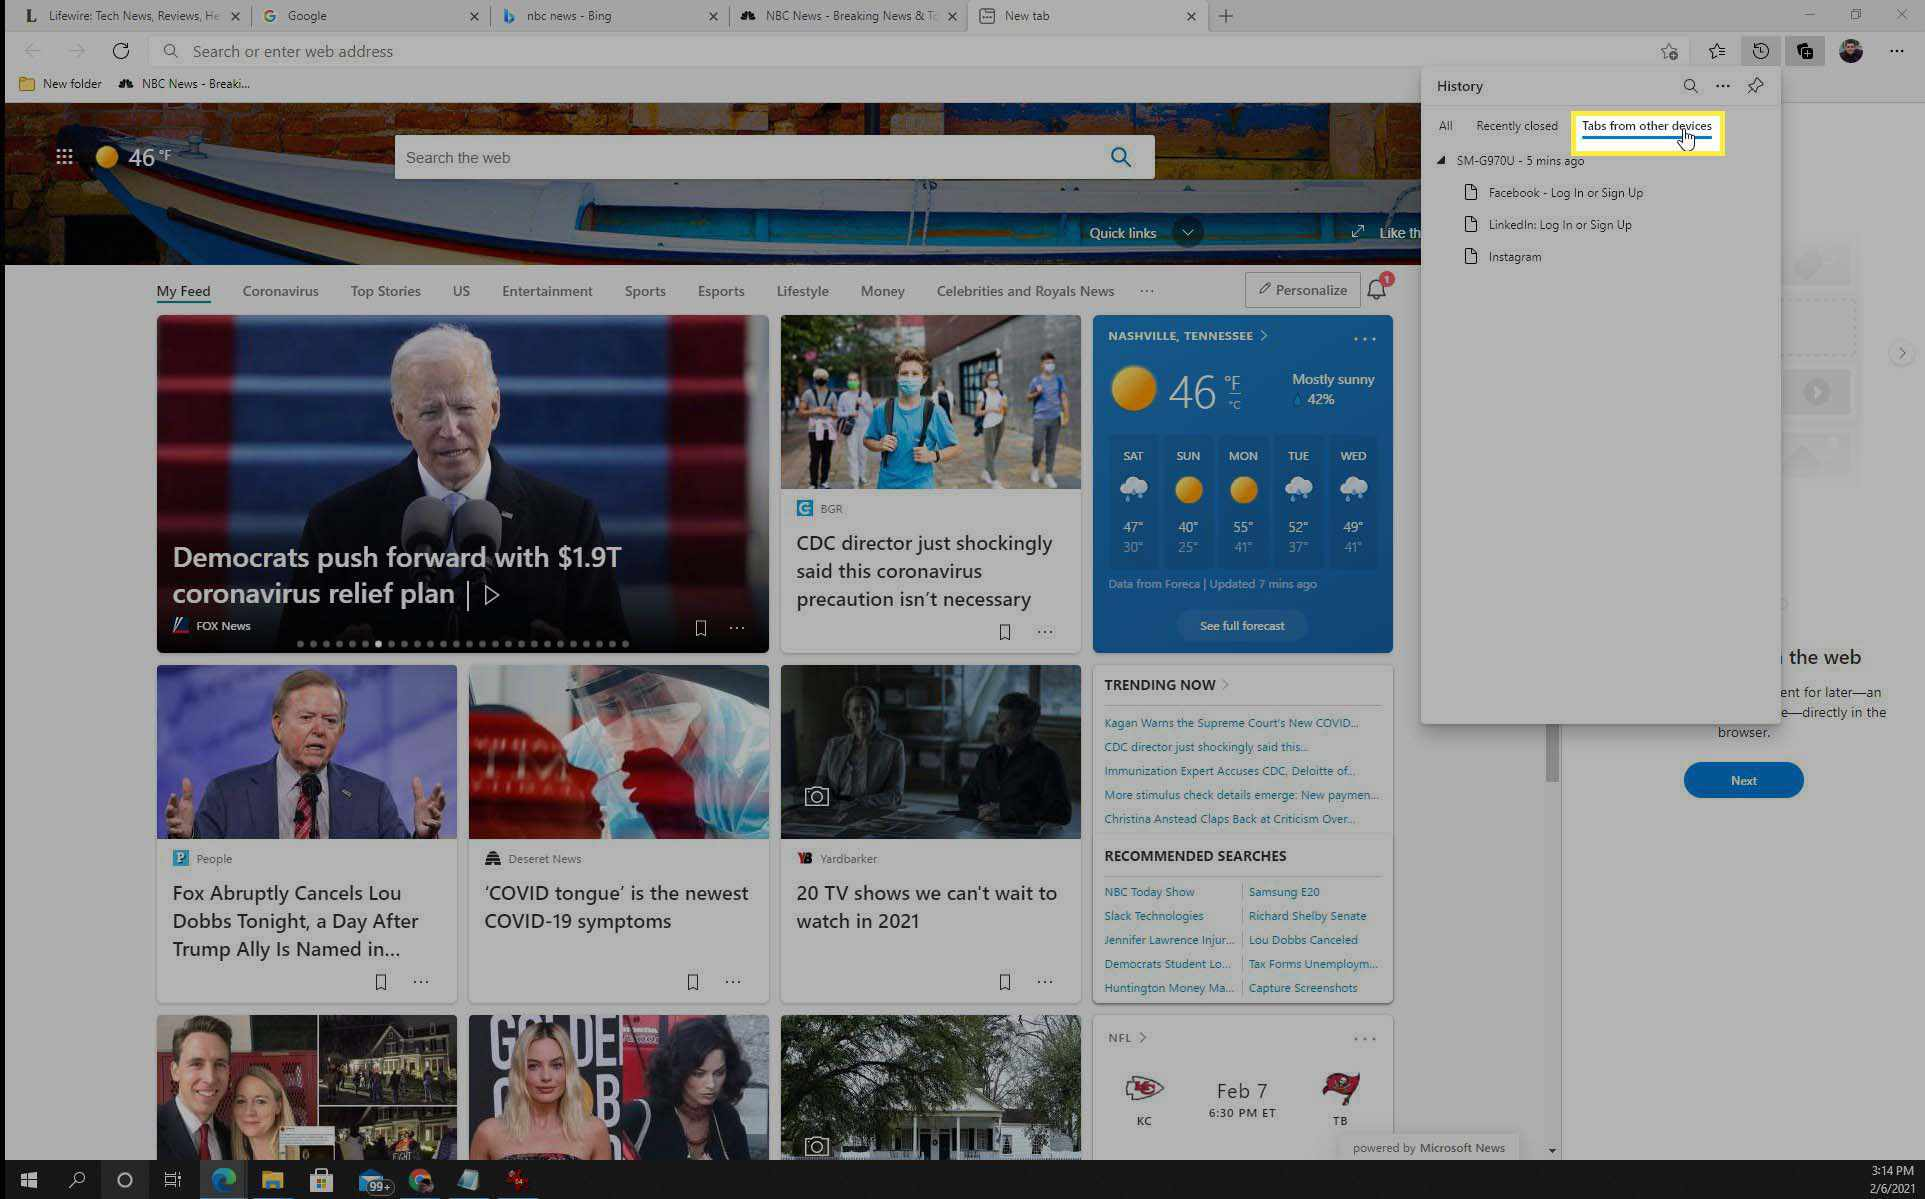 Showing open tabs in Edge browser.